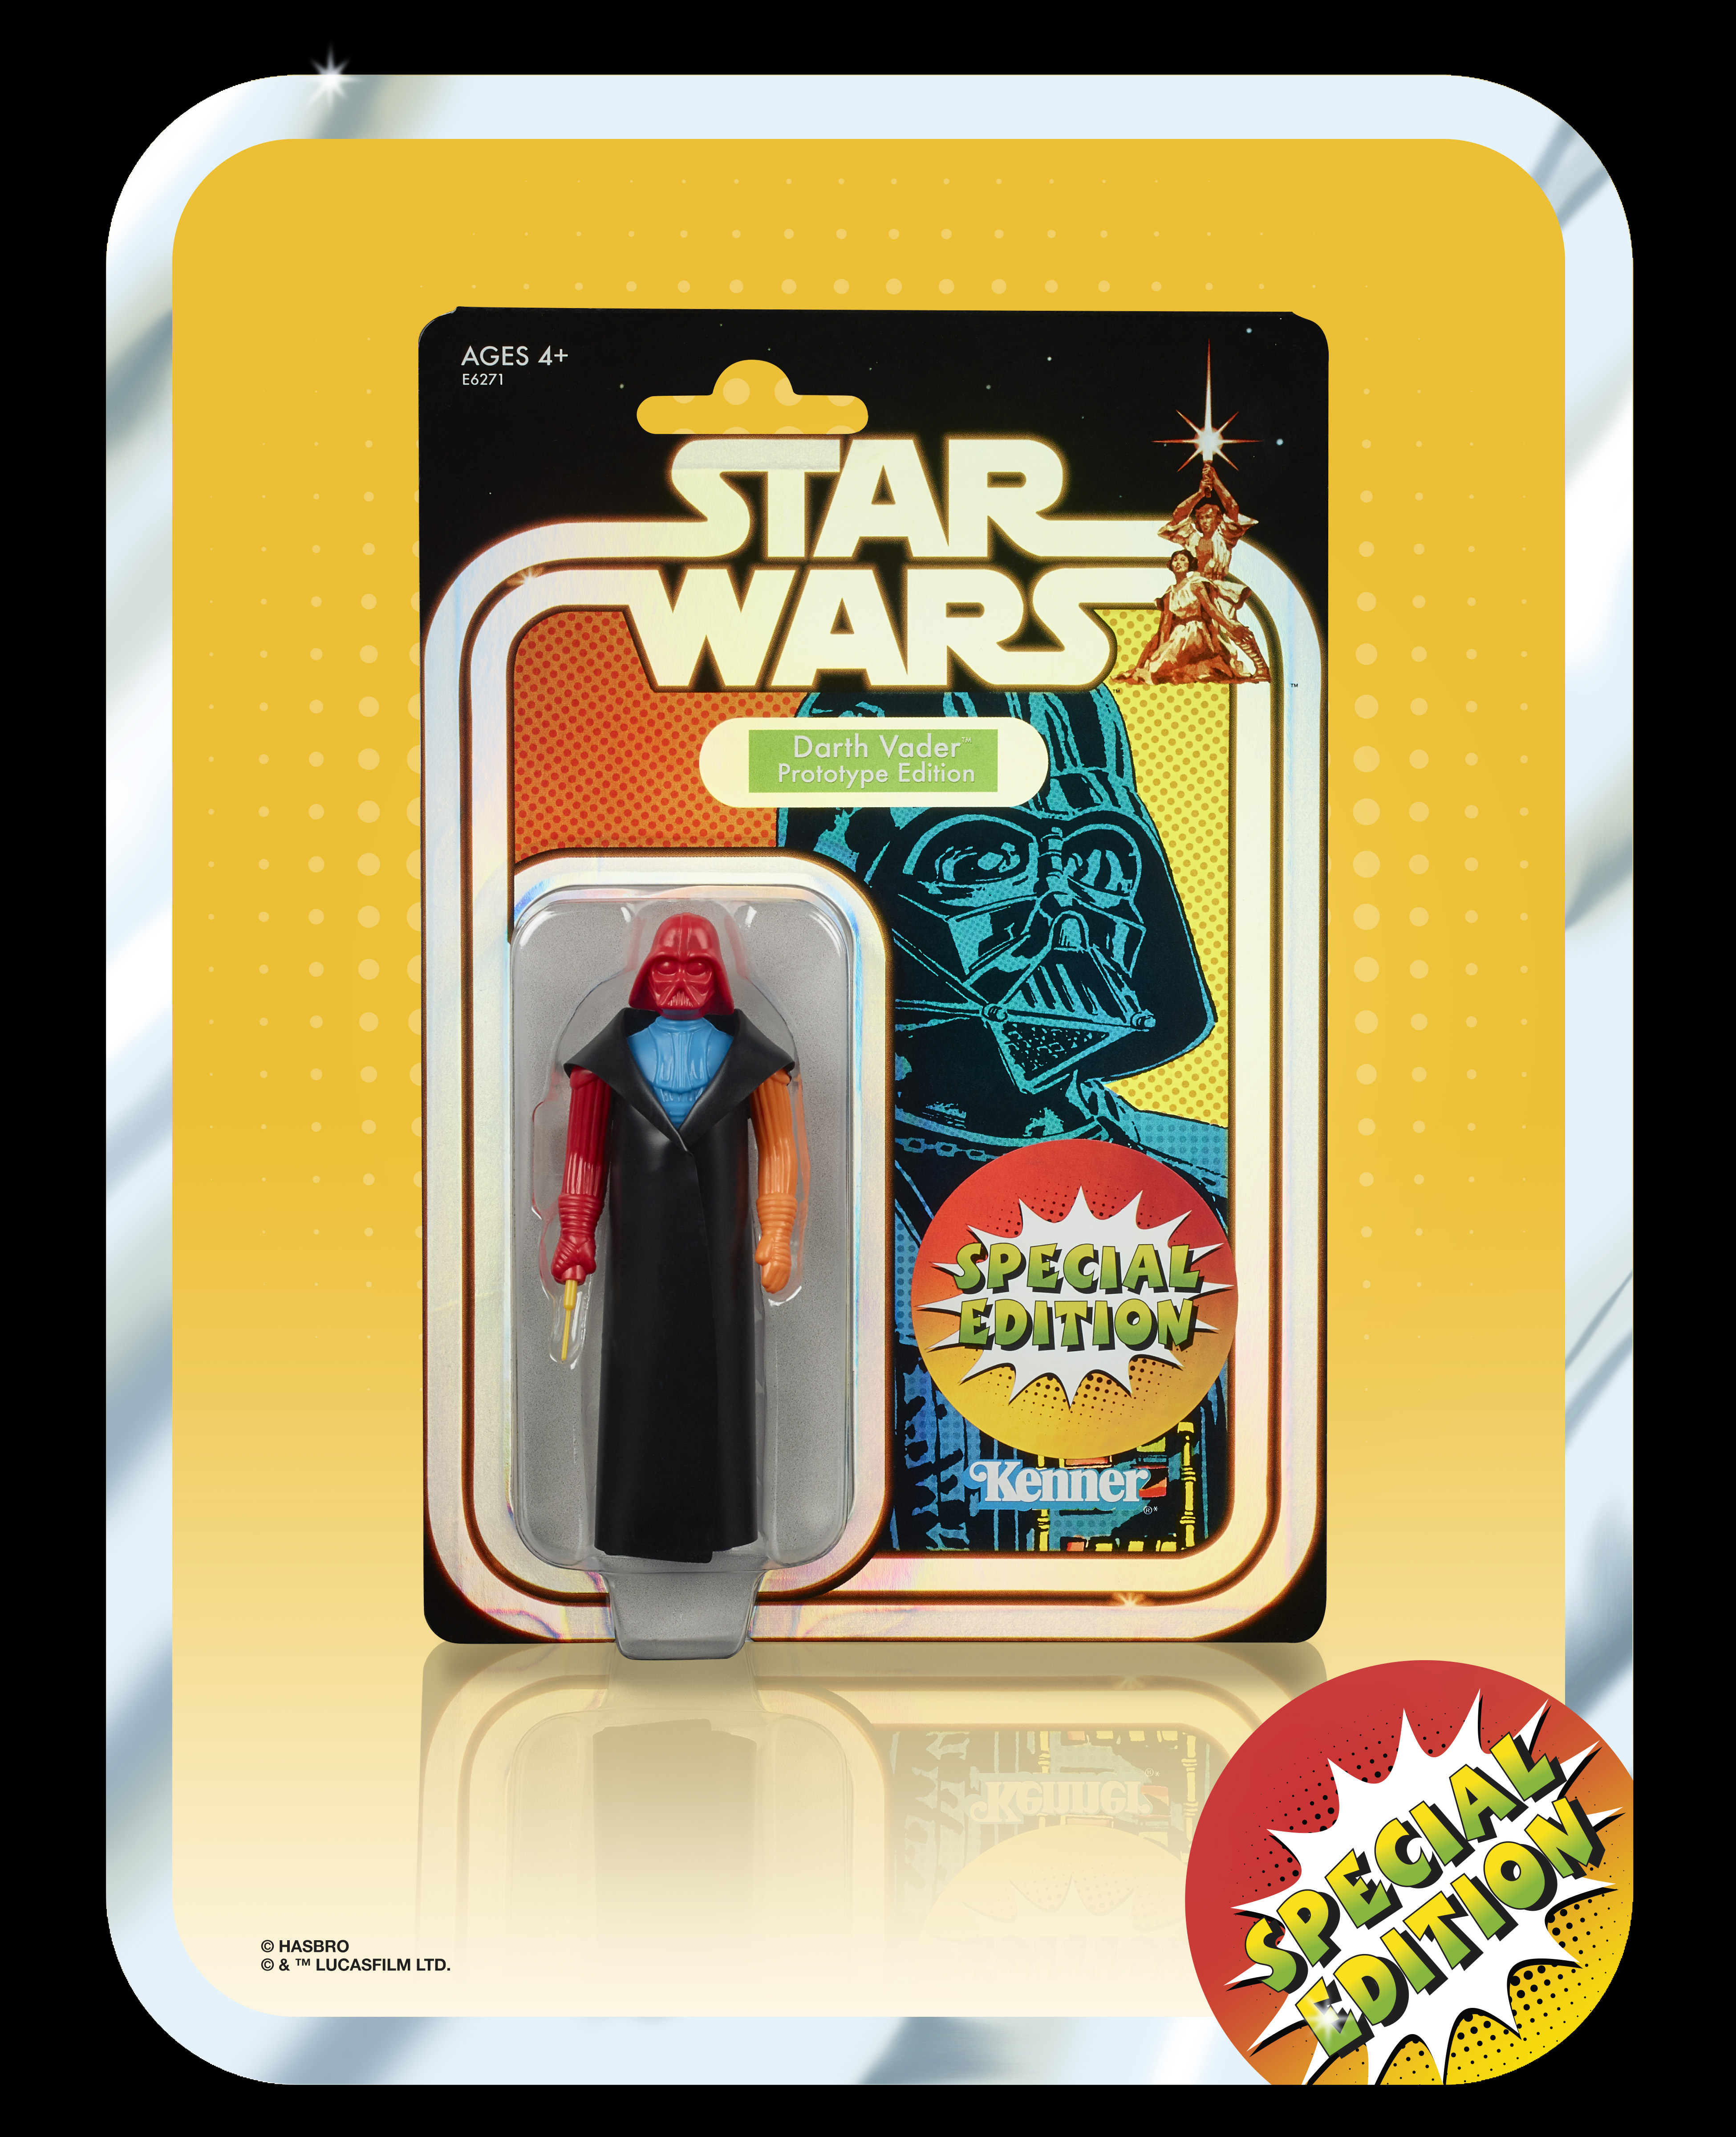 STAR WARS SPECIAL EDITION RETRO PROTOTYPE 3.75-INCH DARTH VADER Figure  - in pack (2)